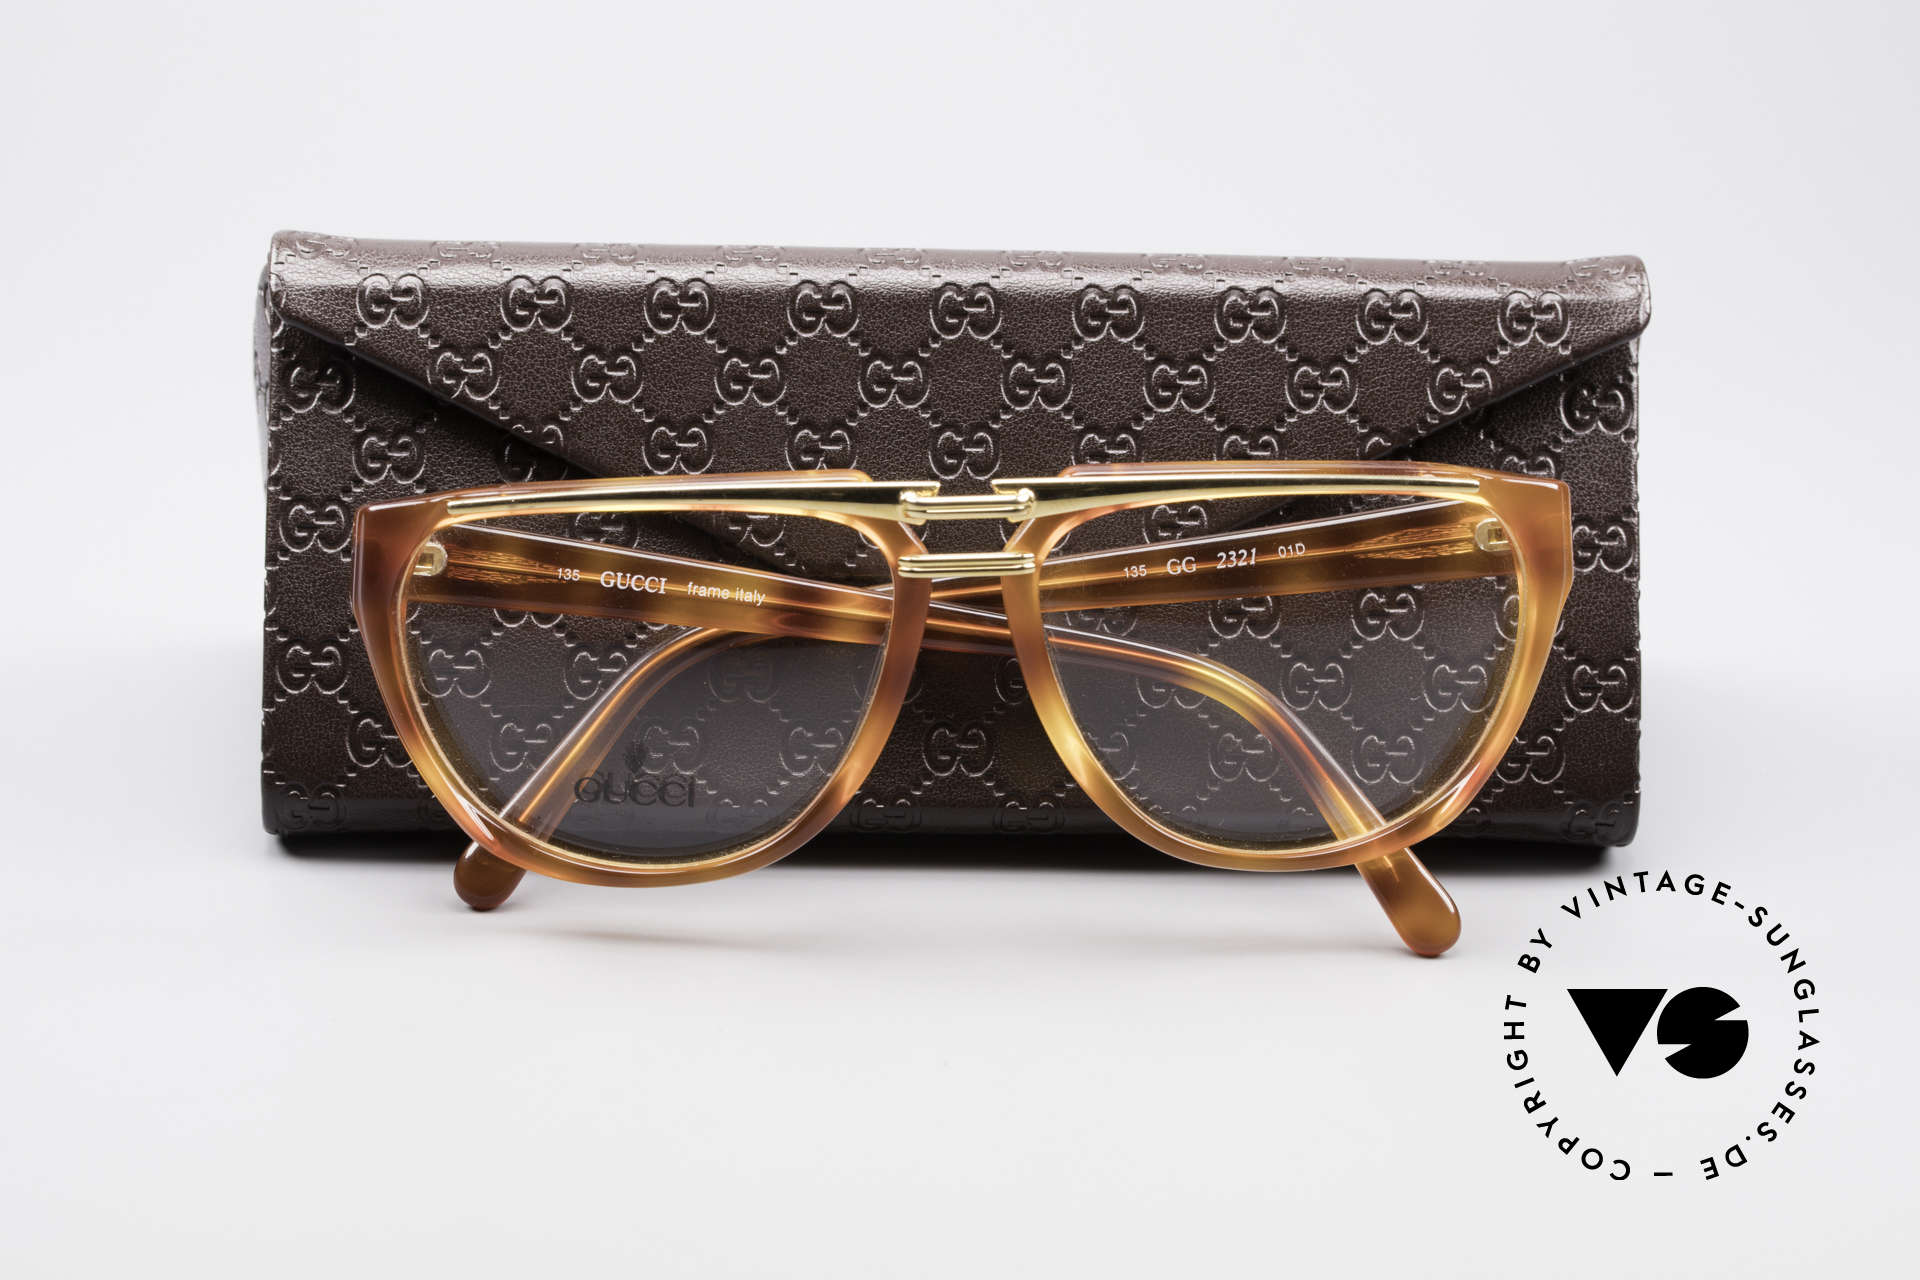 Gucci 2321 Ladies Designer Glasses 80's, demo lenses can be replaced with optical (sun) lenses, Made for Women